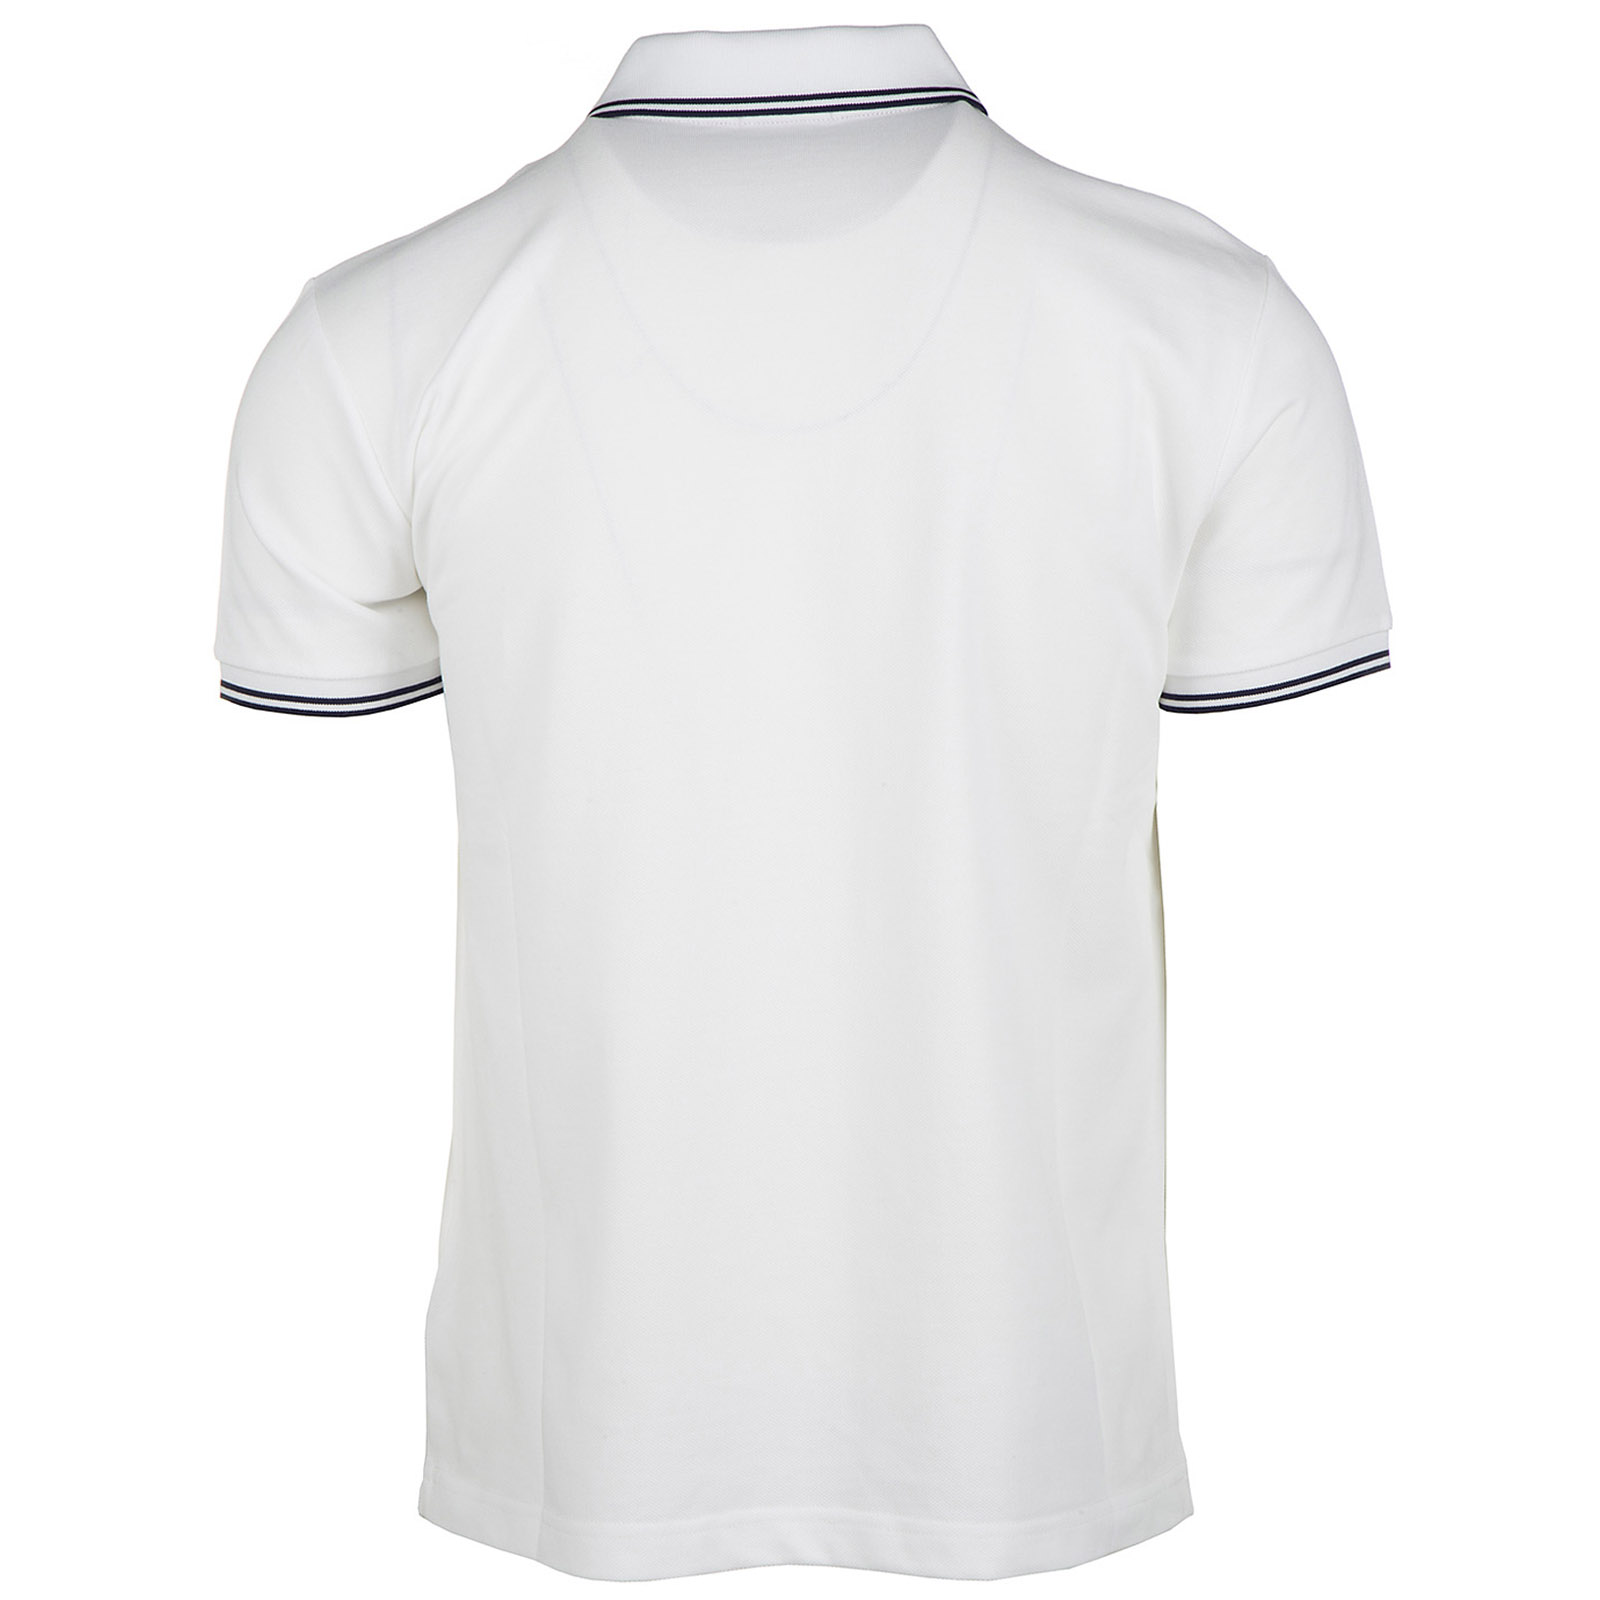 Men's Collar Sleeve Short T Shirt Polo rZXrxzw4q